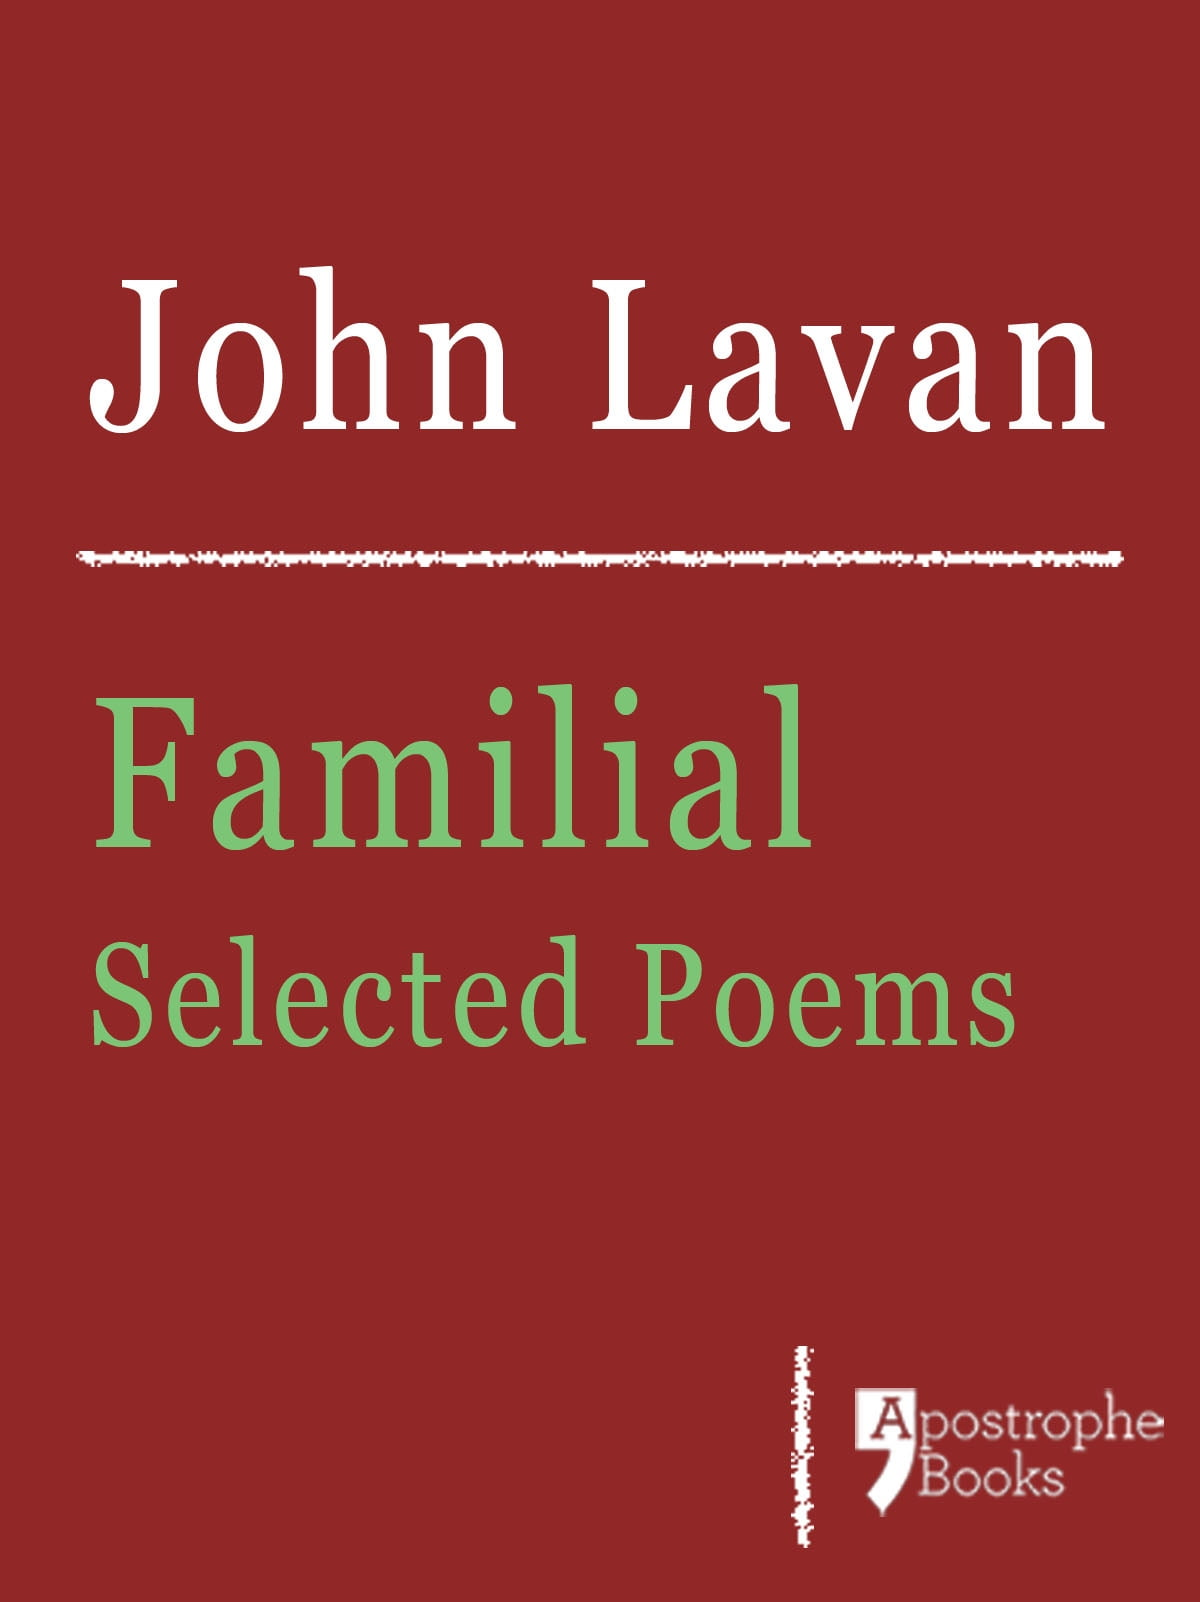 Familial: Selected Poems: Poems About Family, Love And Nature ebook by John  Lavan - Rakuten Kobo